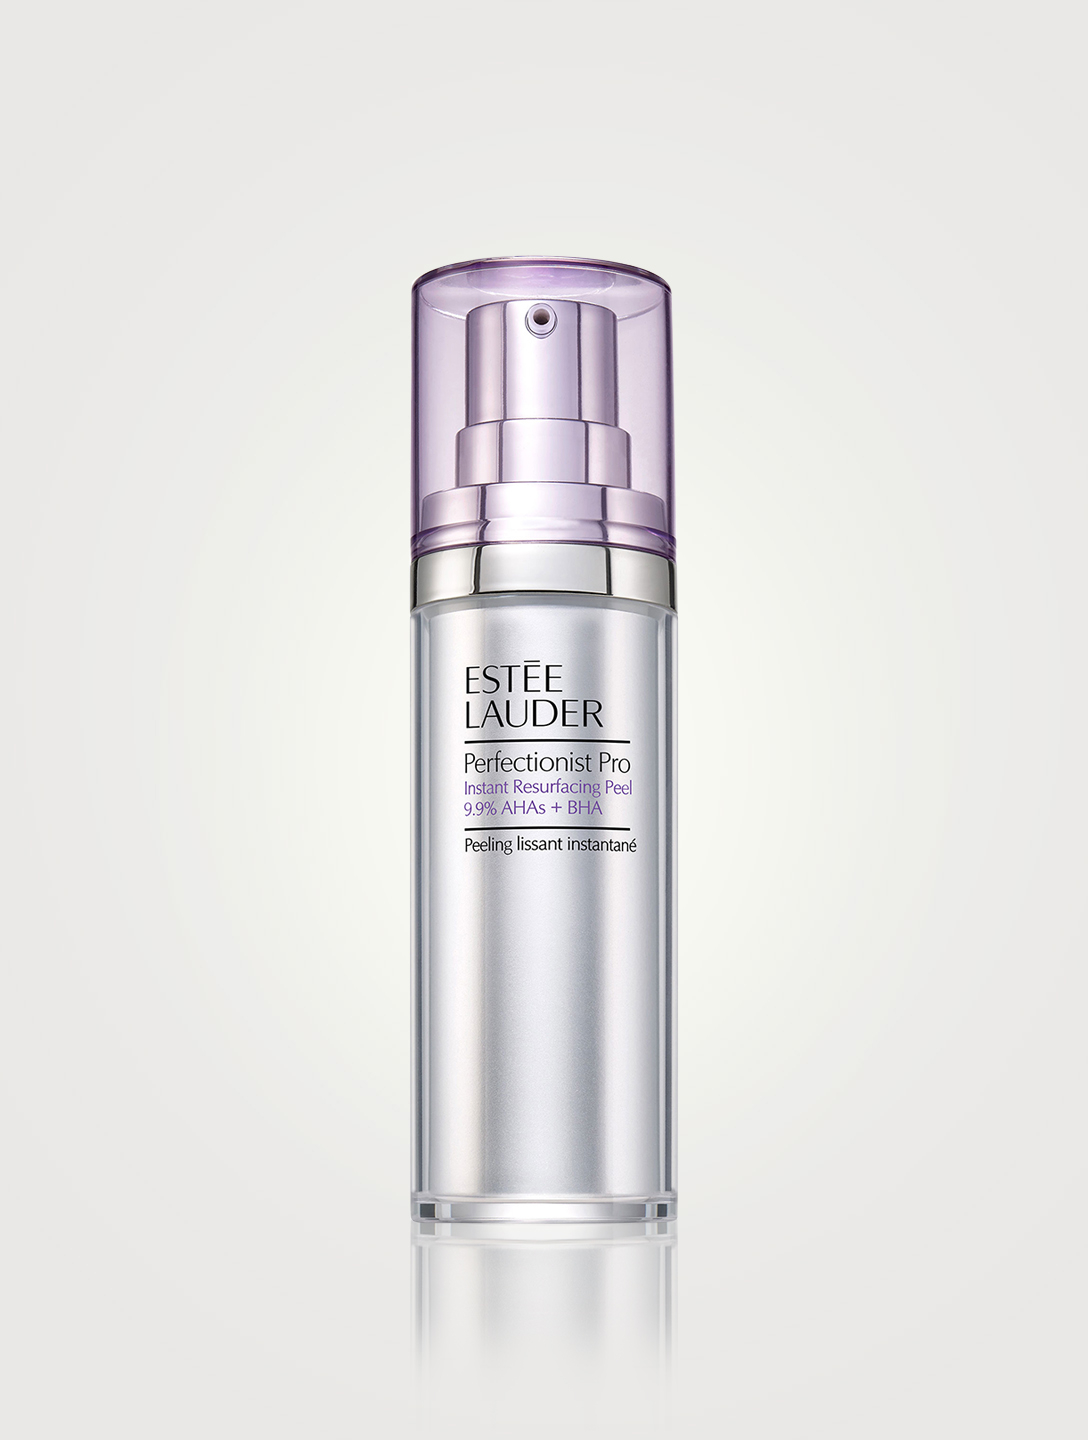 ESTÉE LAUDER Perfectionist Pro Instant Resurfacing Peel Beauty